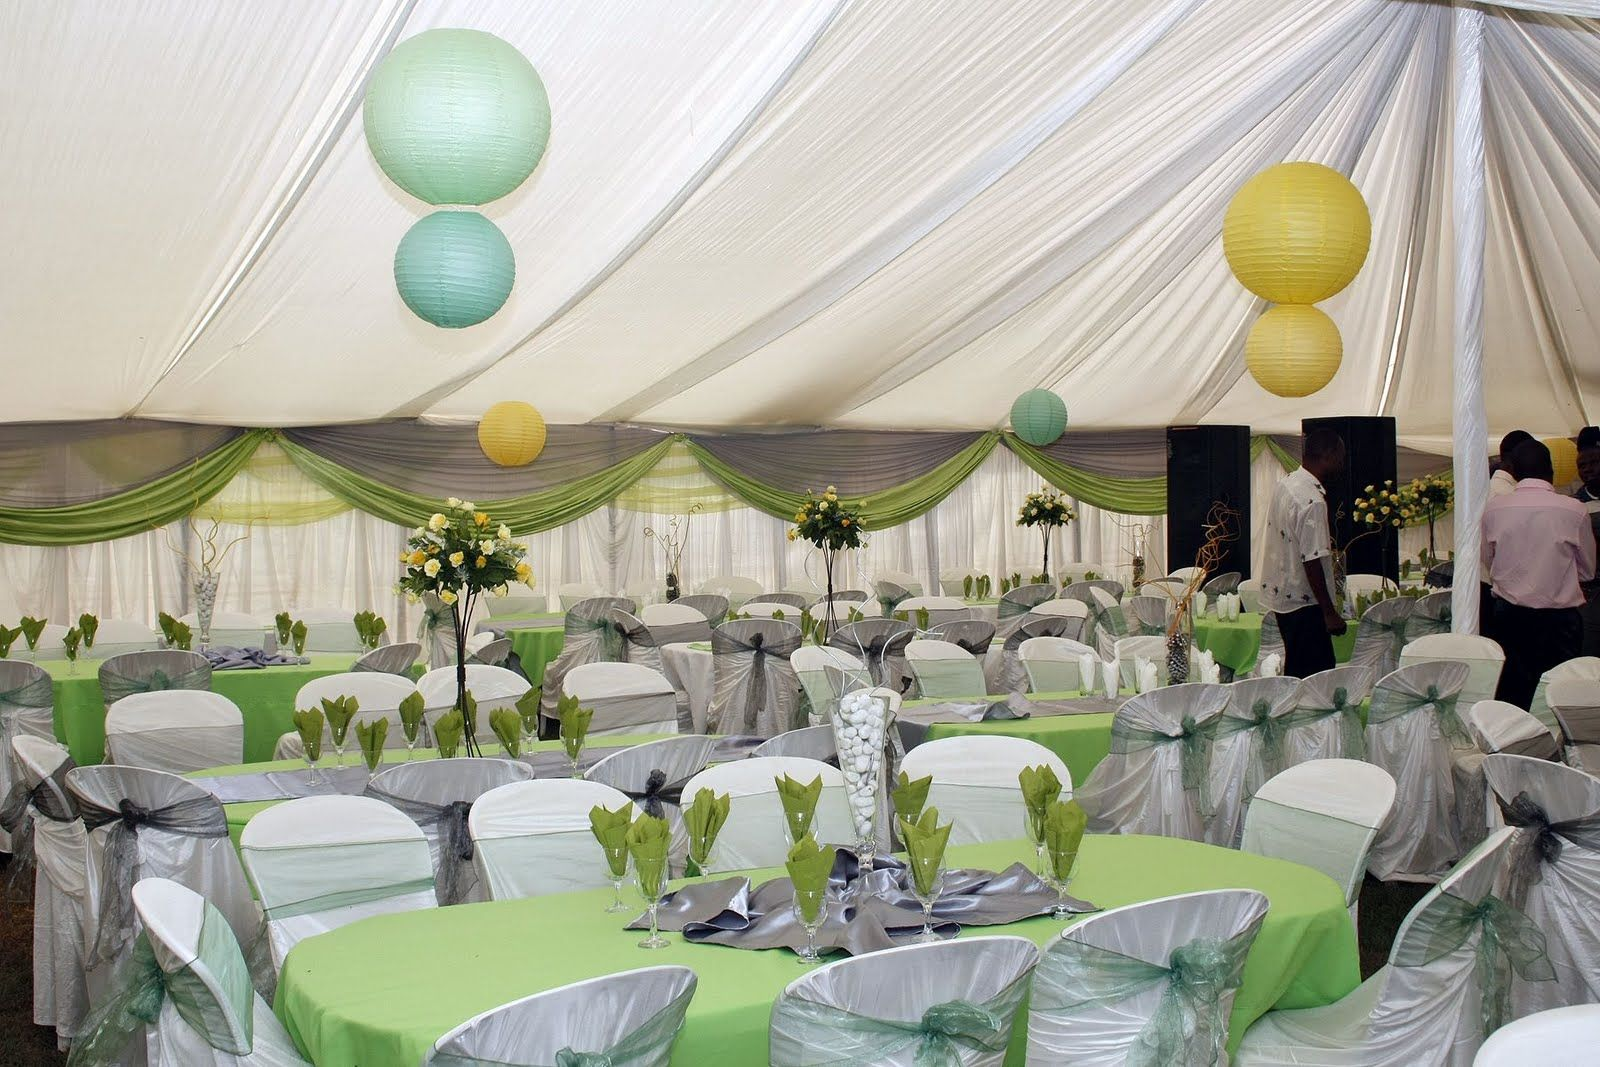 Garden wedding reception decoration ideas how to make for Pictures of wedding venues decorated